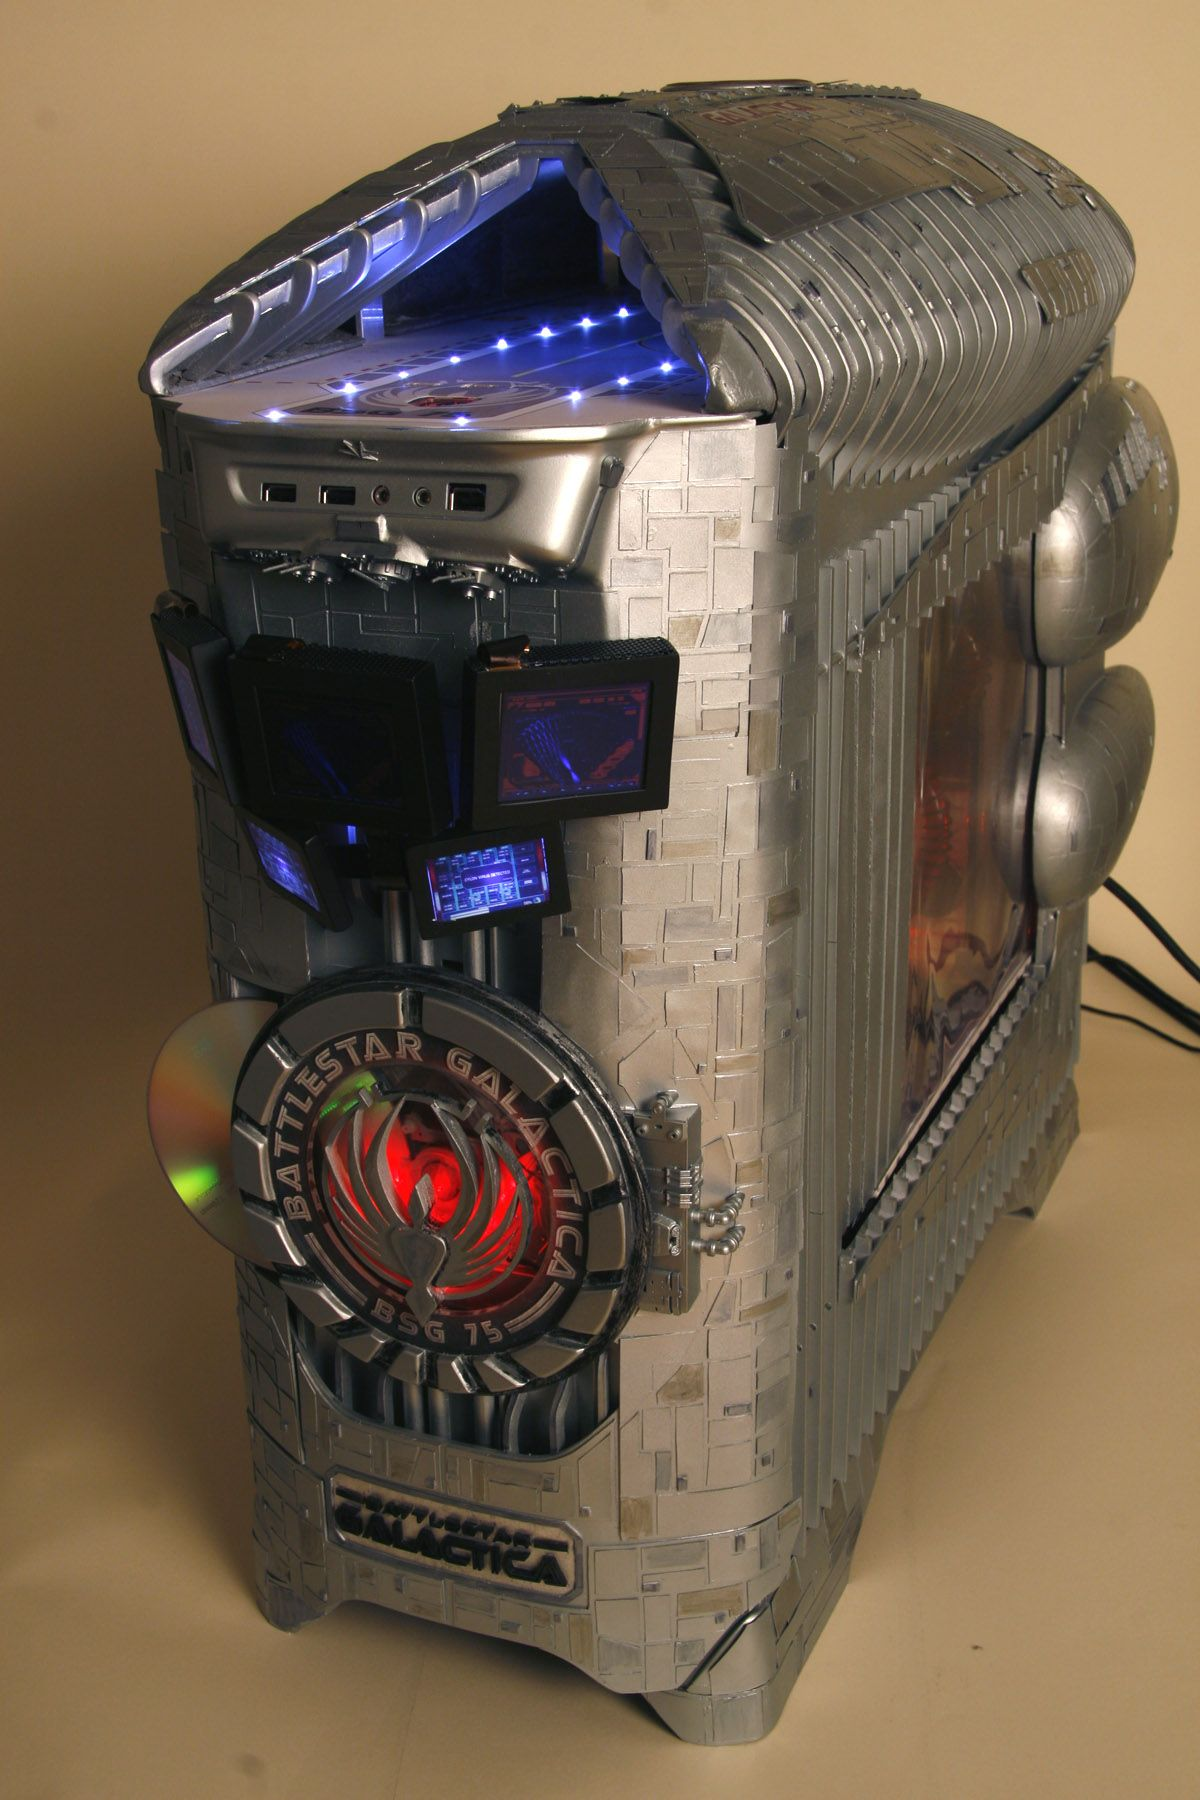 Battlestar Galactica Masterful Pc Case Mod By Brian Carter